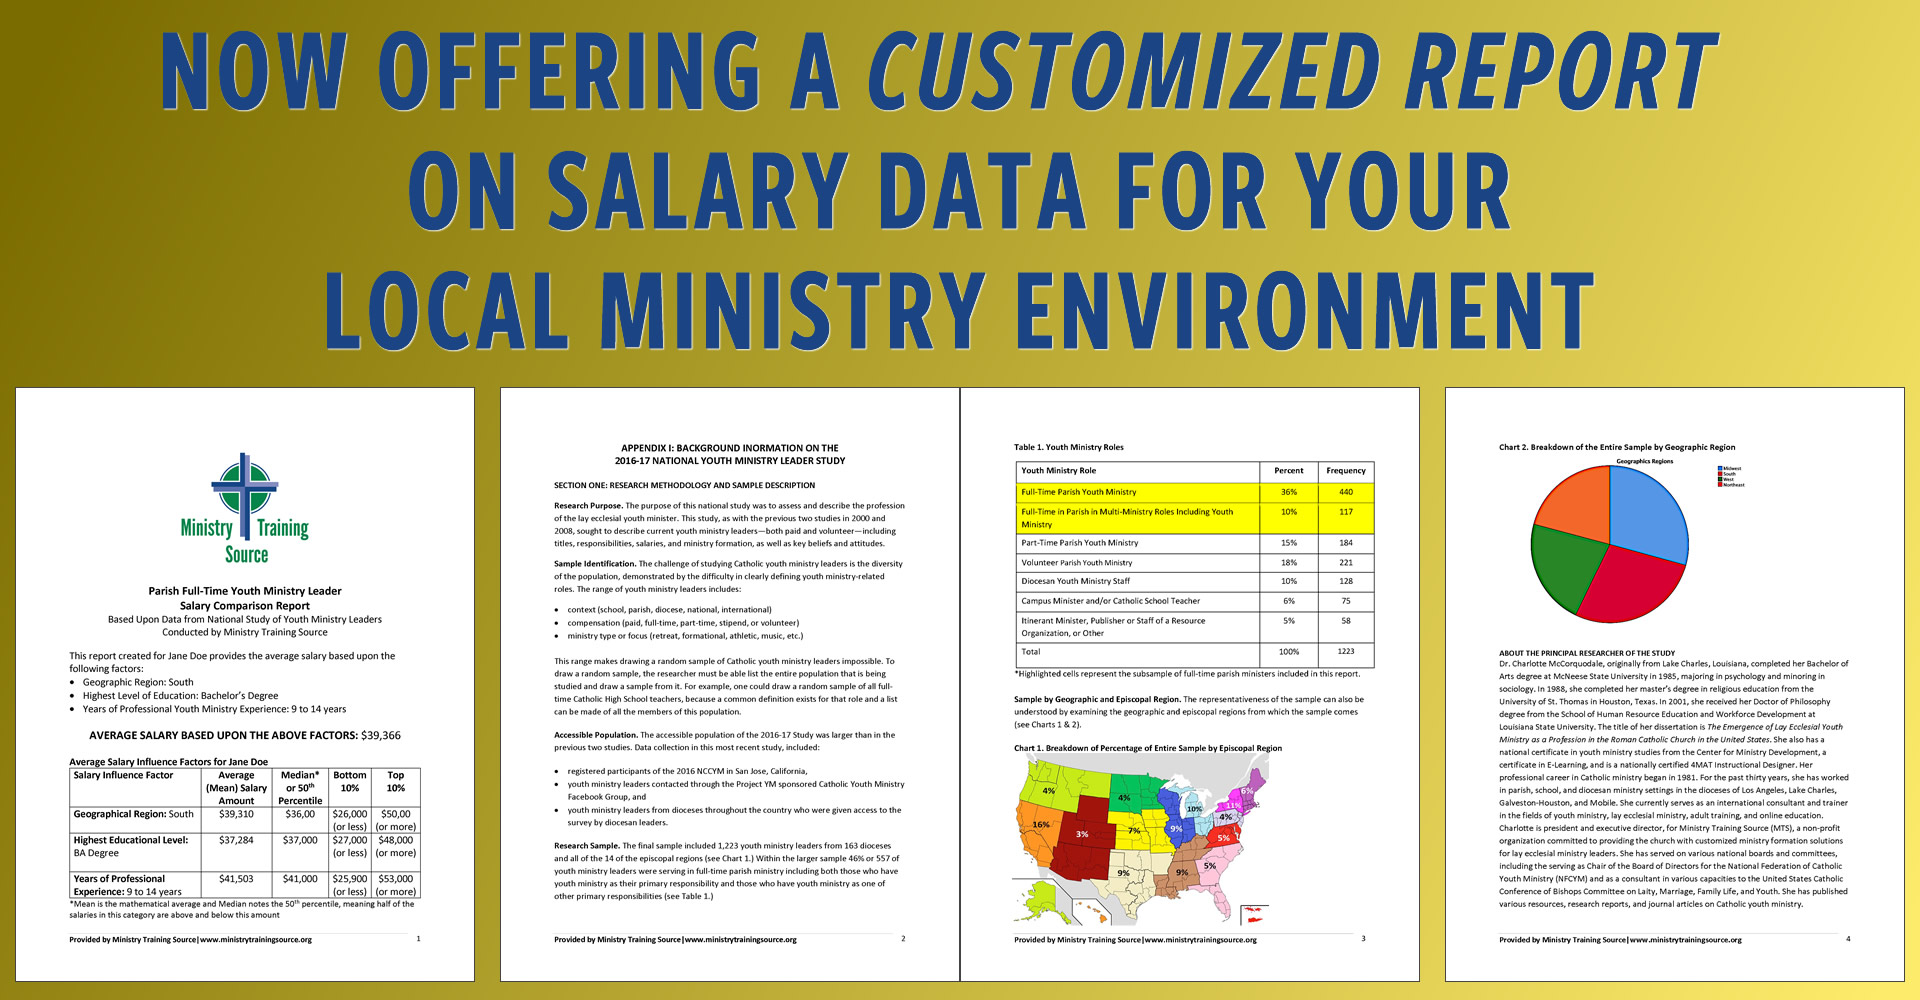 Now offering a customized report on salary data for your local ministry environment.